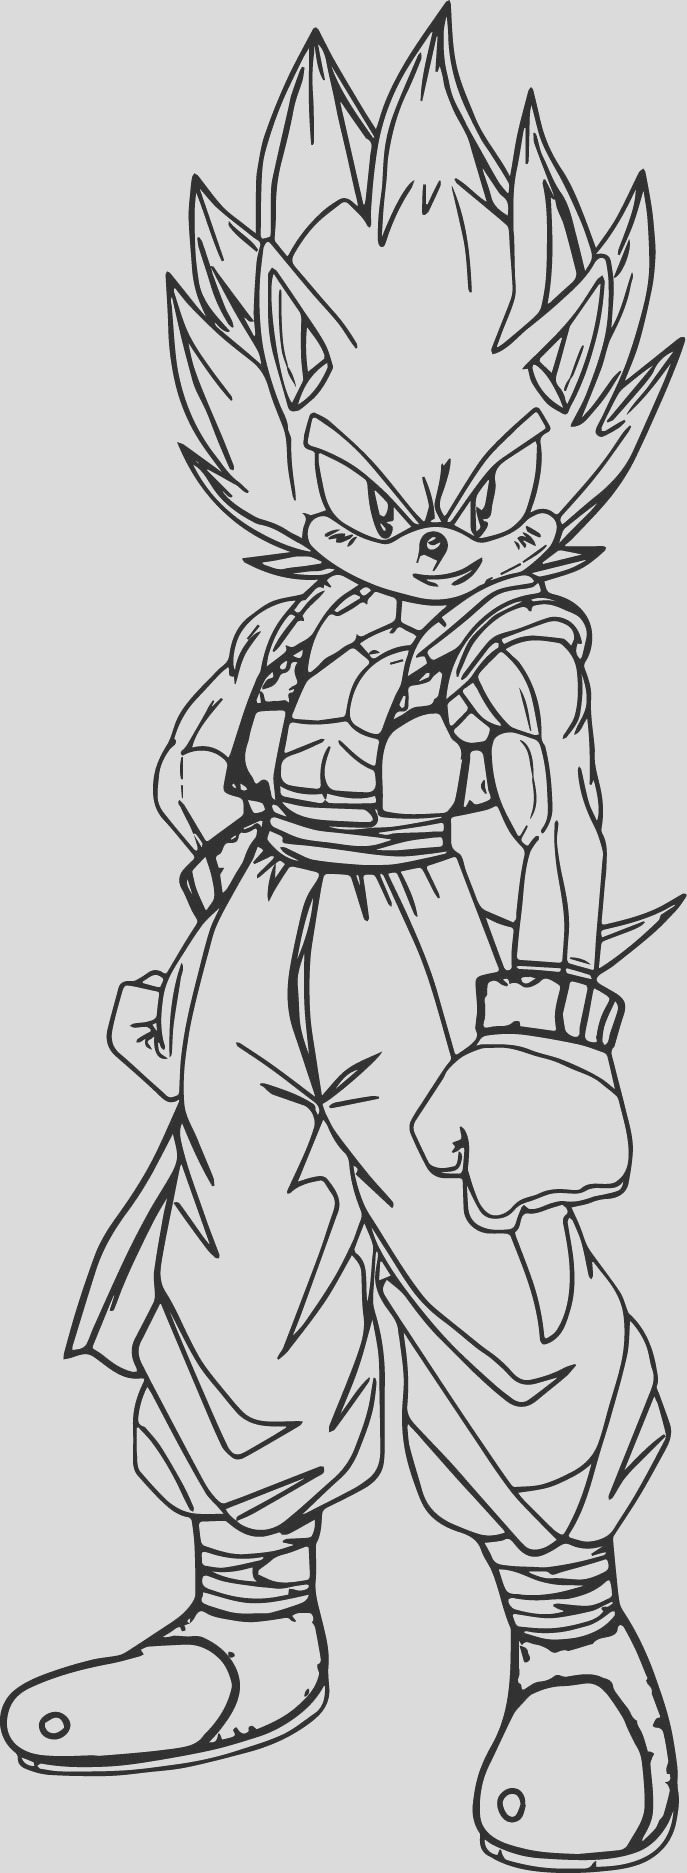 goku printable coloring pages dragon ball gt goku super saiyan 4 coloring pages printable goku coloring pages